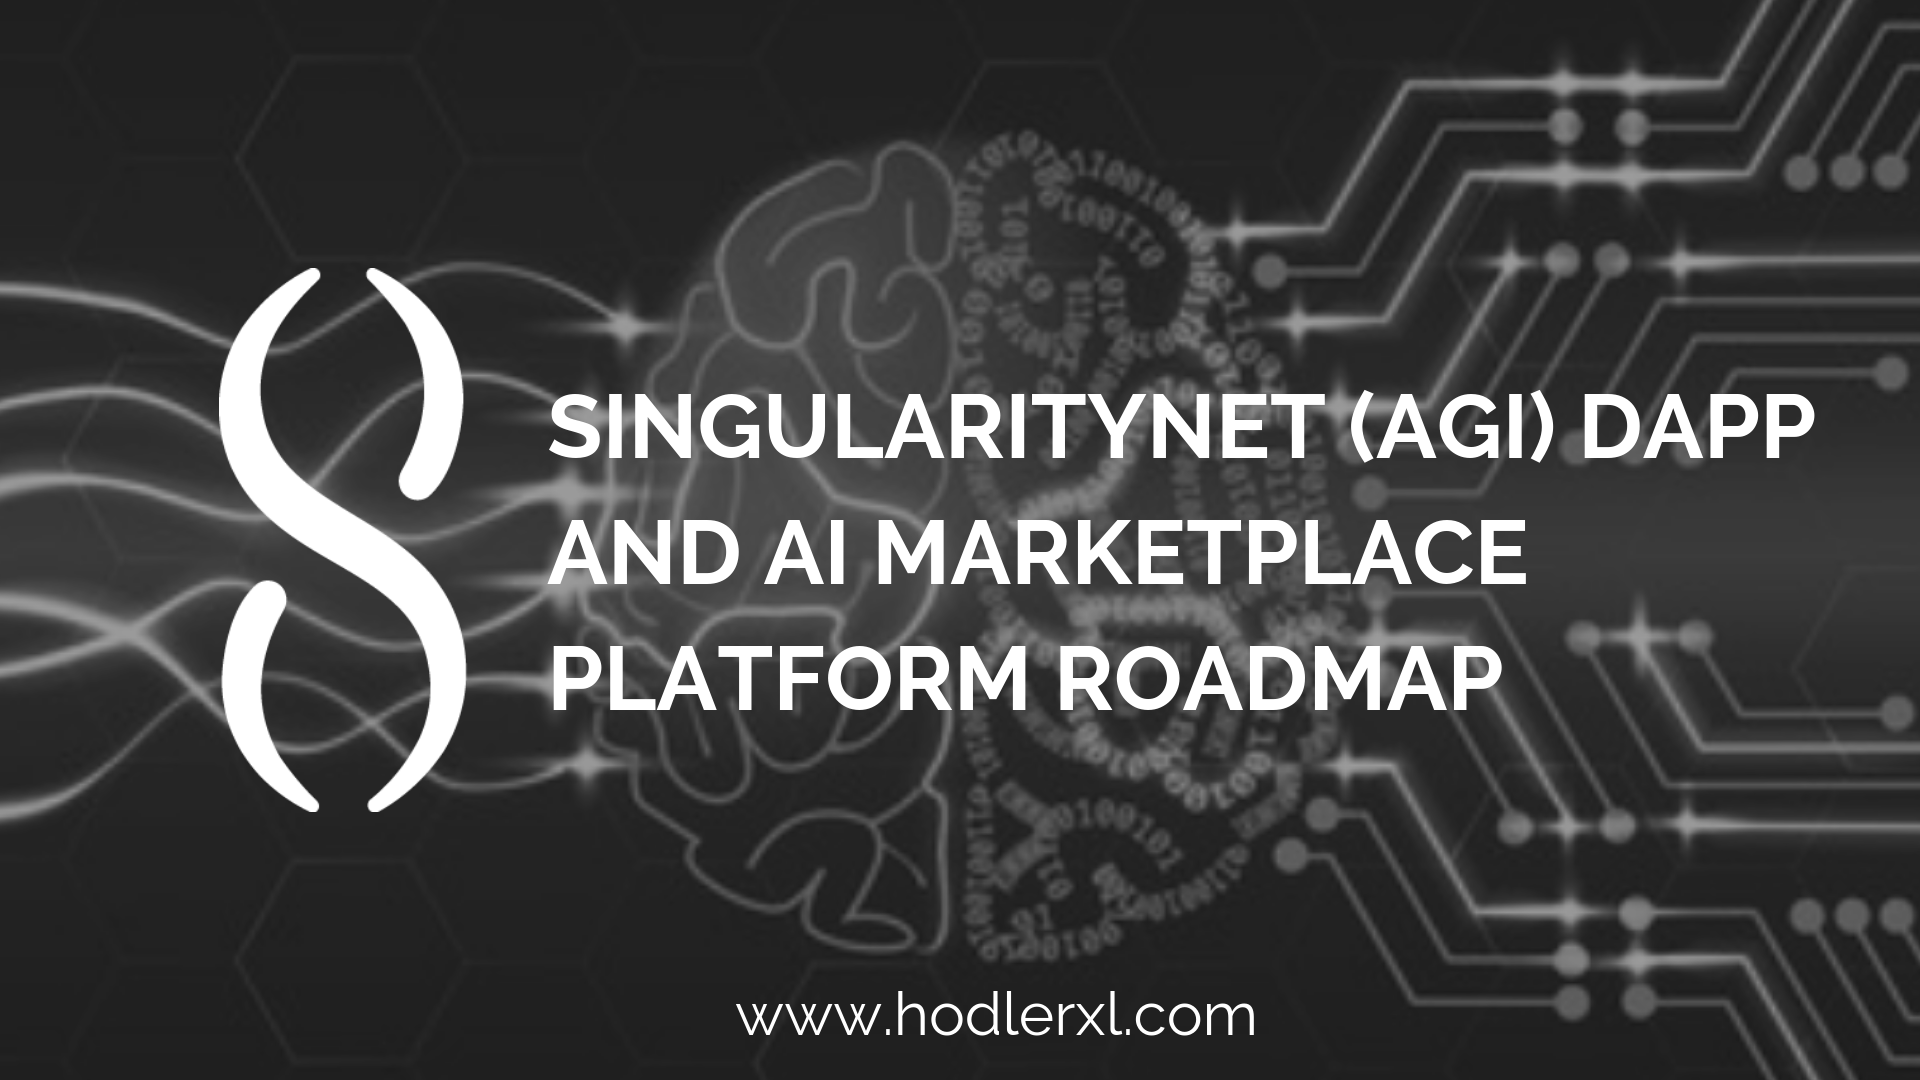 SingularityNET (AGI) DApp And AI Marketplace Platform Roadmap